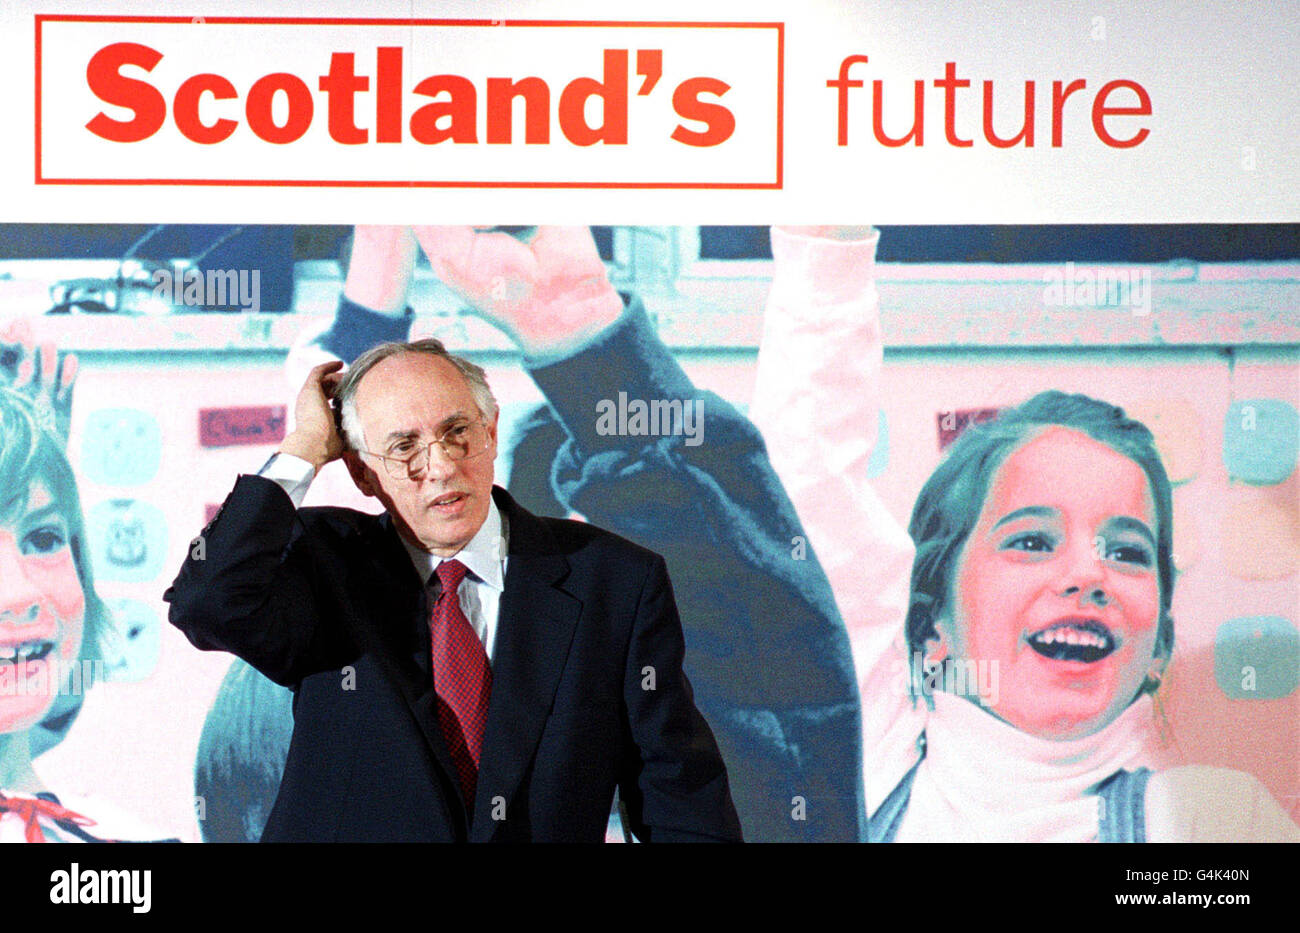 Scottish elections/Lab manifesto - Stock Image